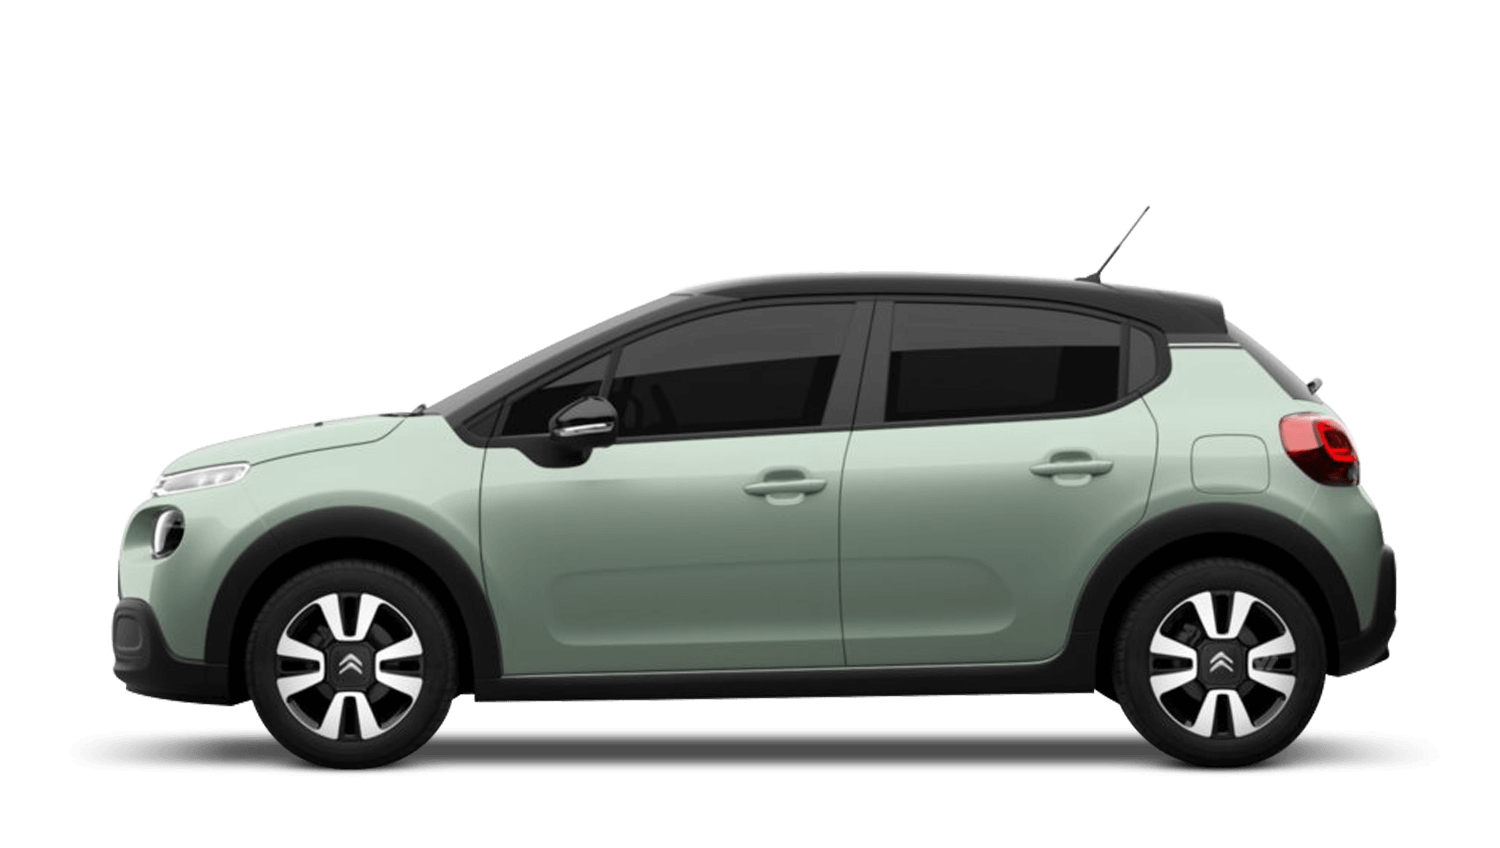 New CITROEN C3 68 PT manual - Feel